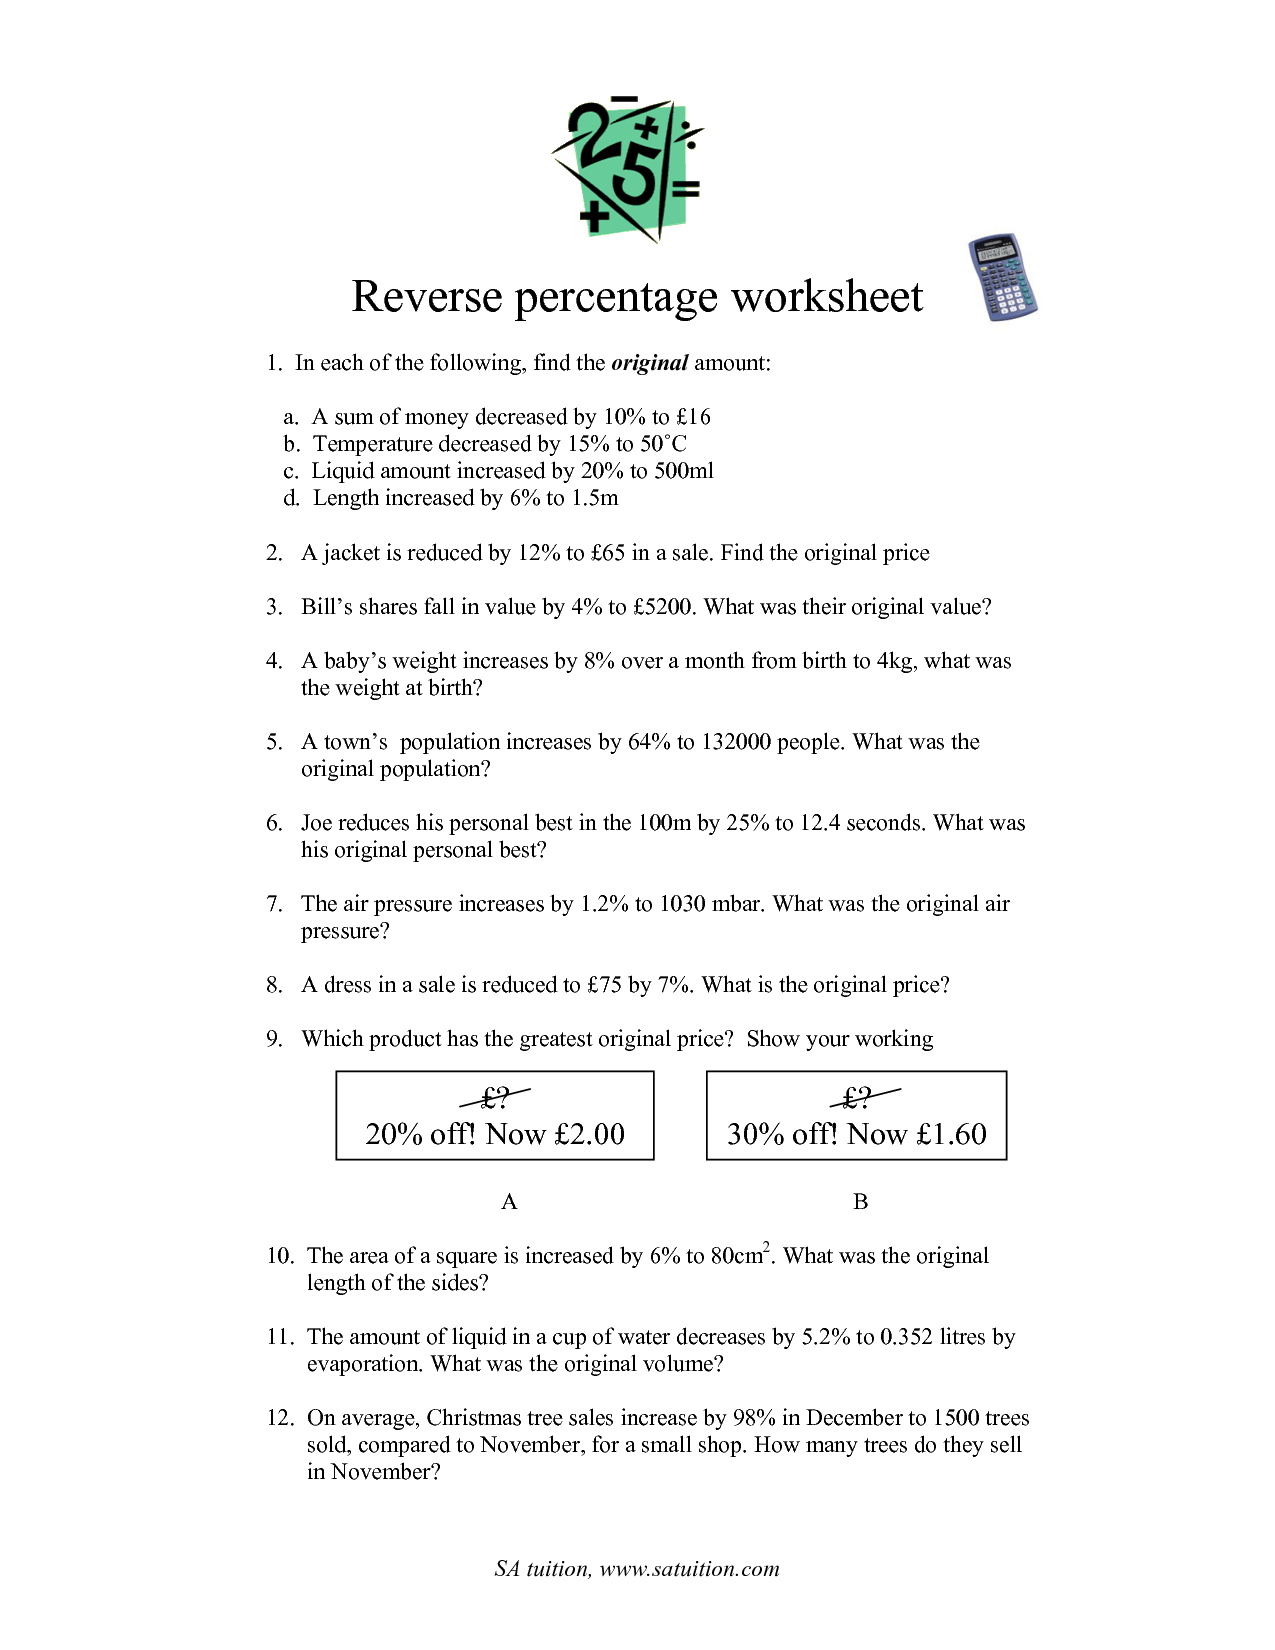 17 Best Images Of Percent Increase Or Decrease Worksheet